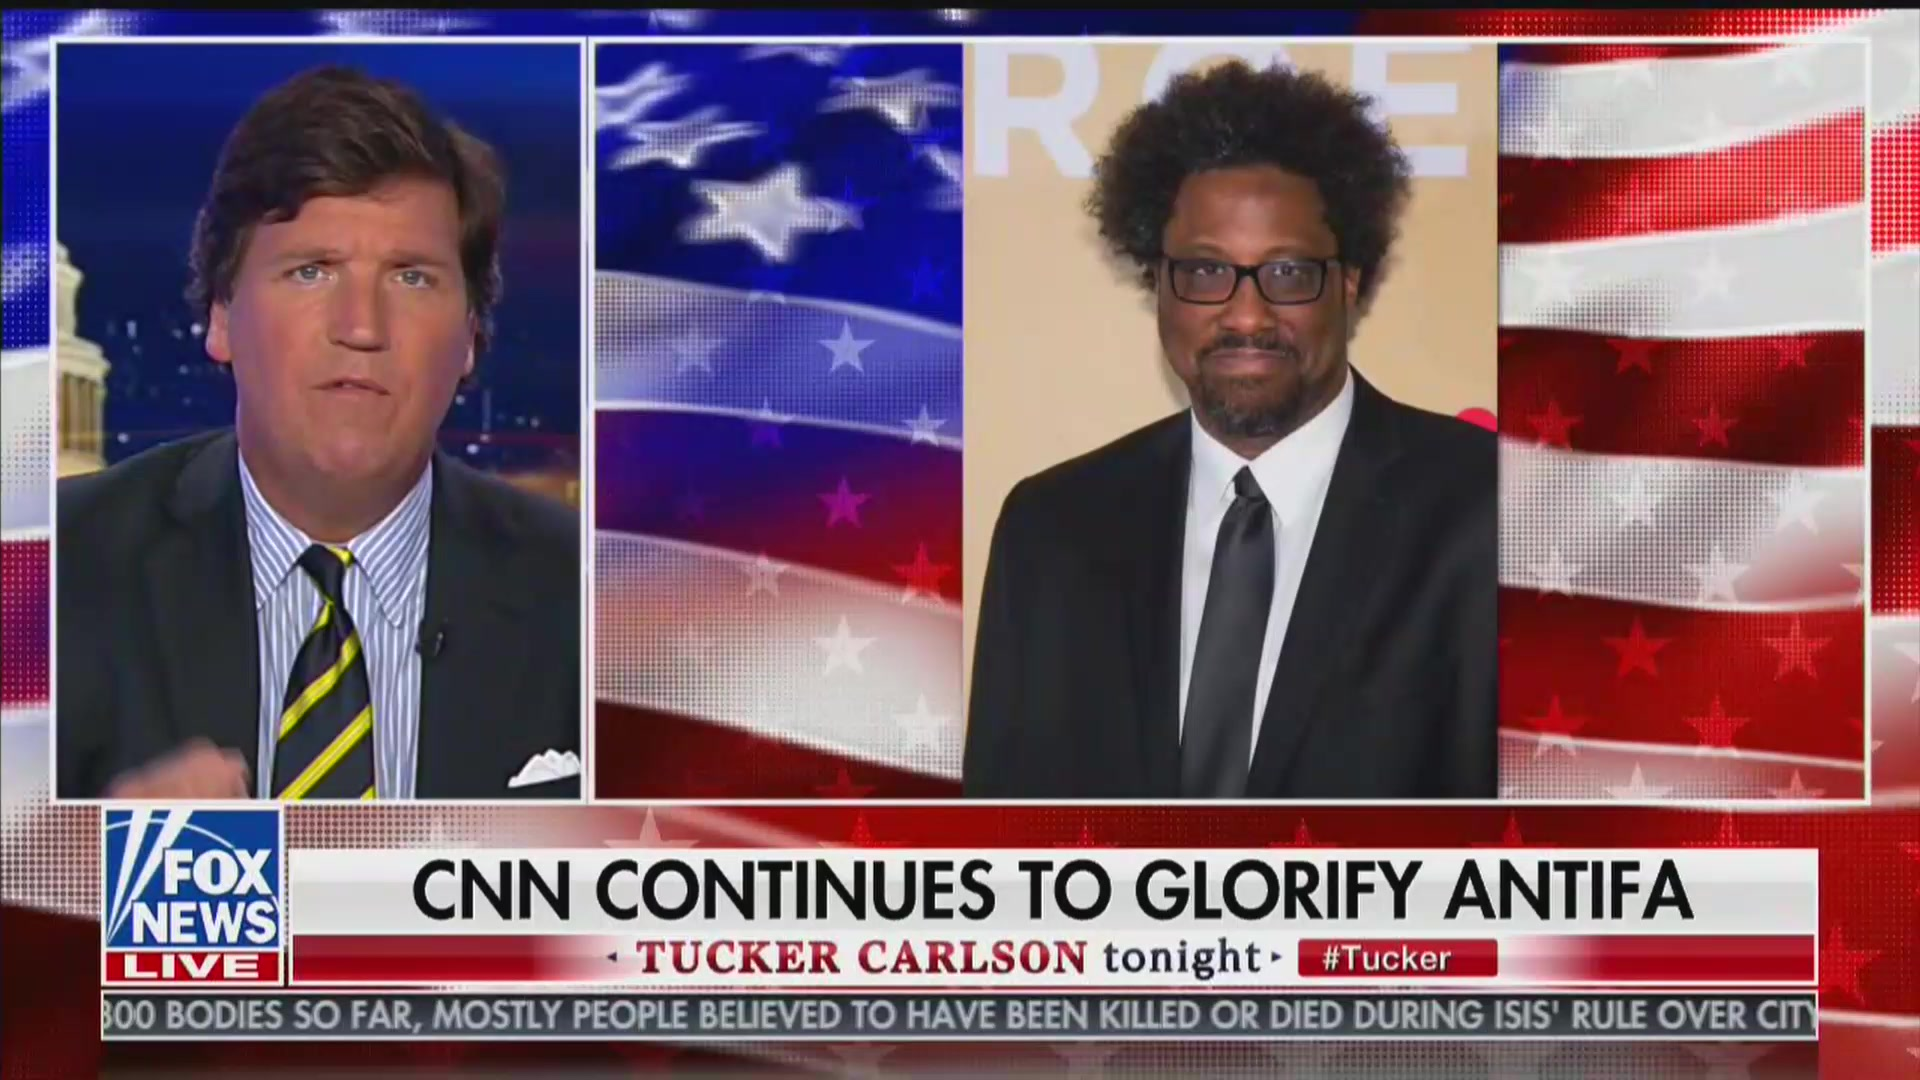 Tucker Carlson Accuses CNN of Funding Antifa: 'They Are Literally Promoting Violence!'